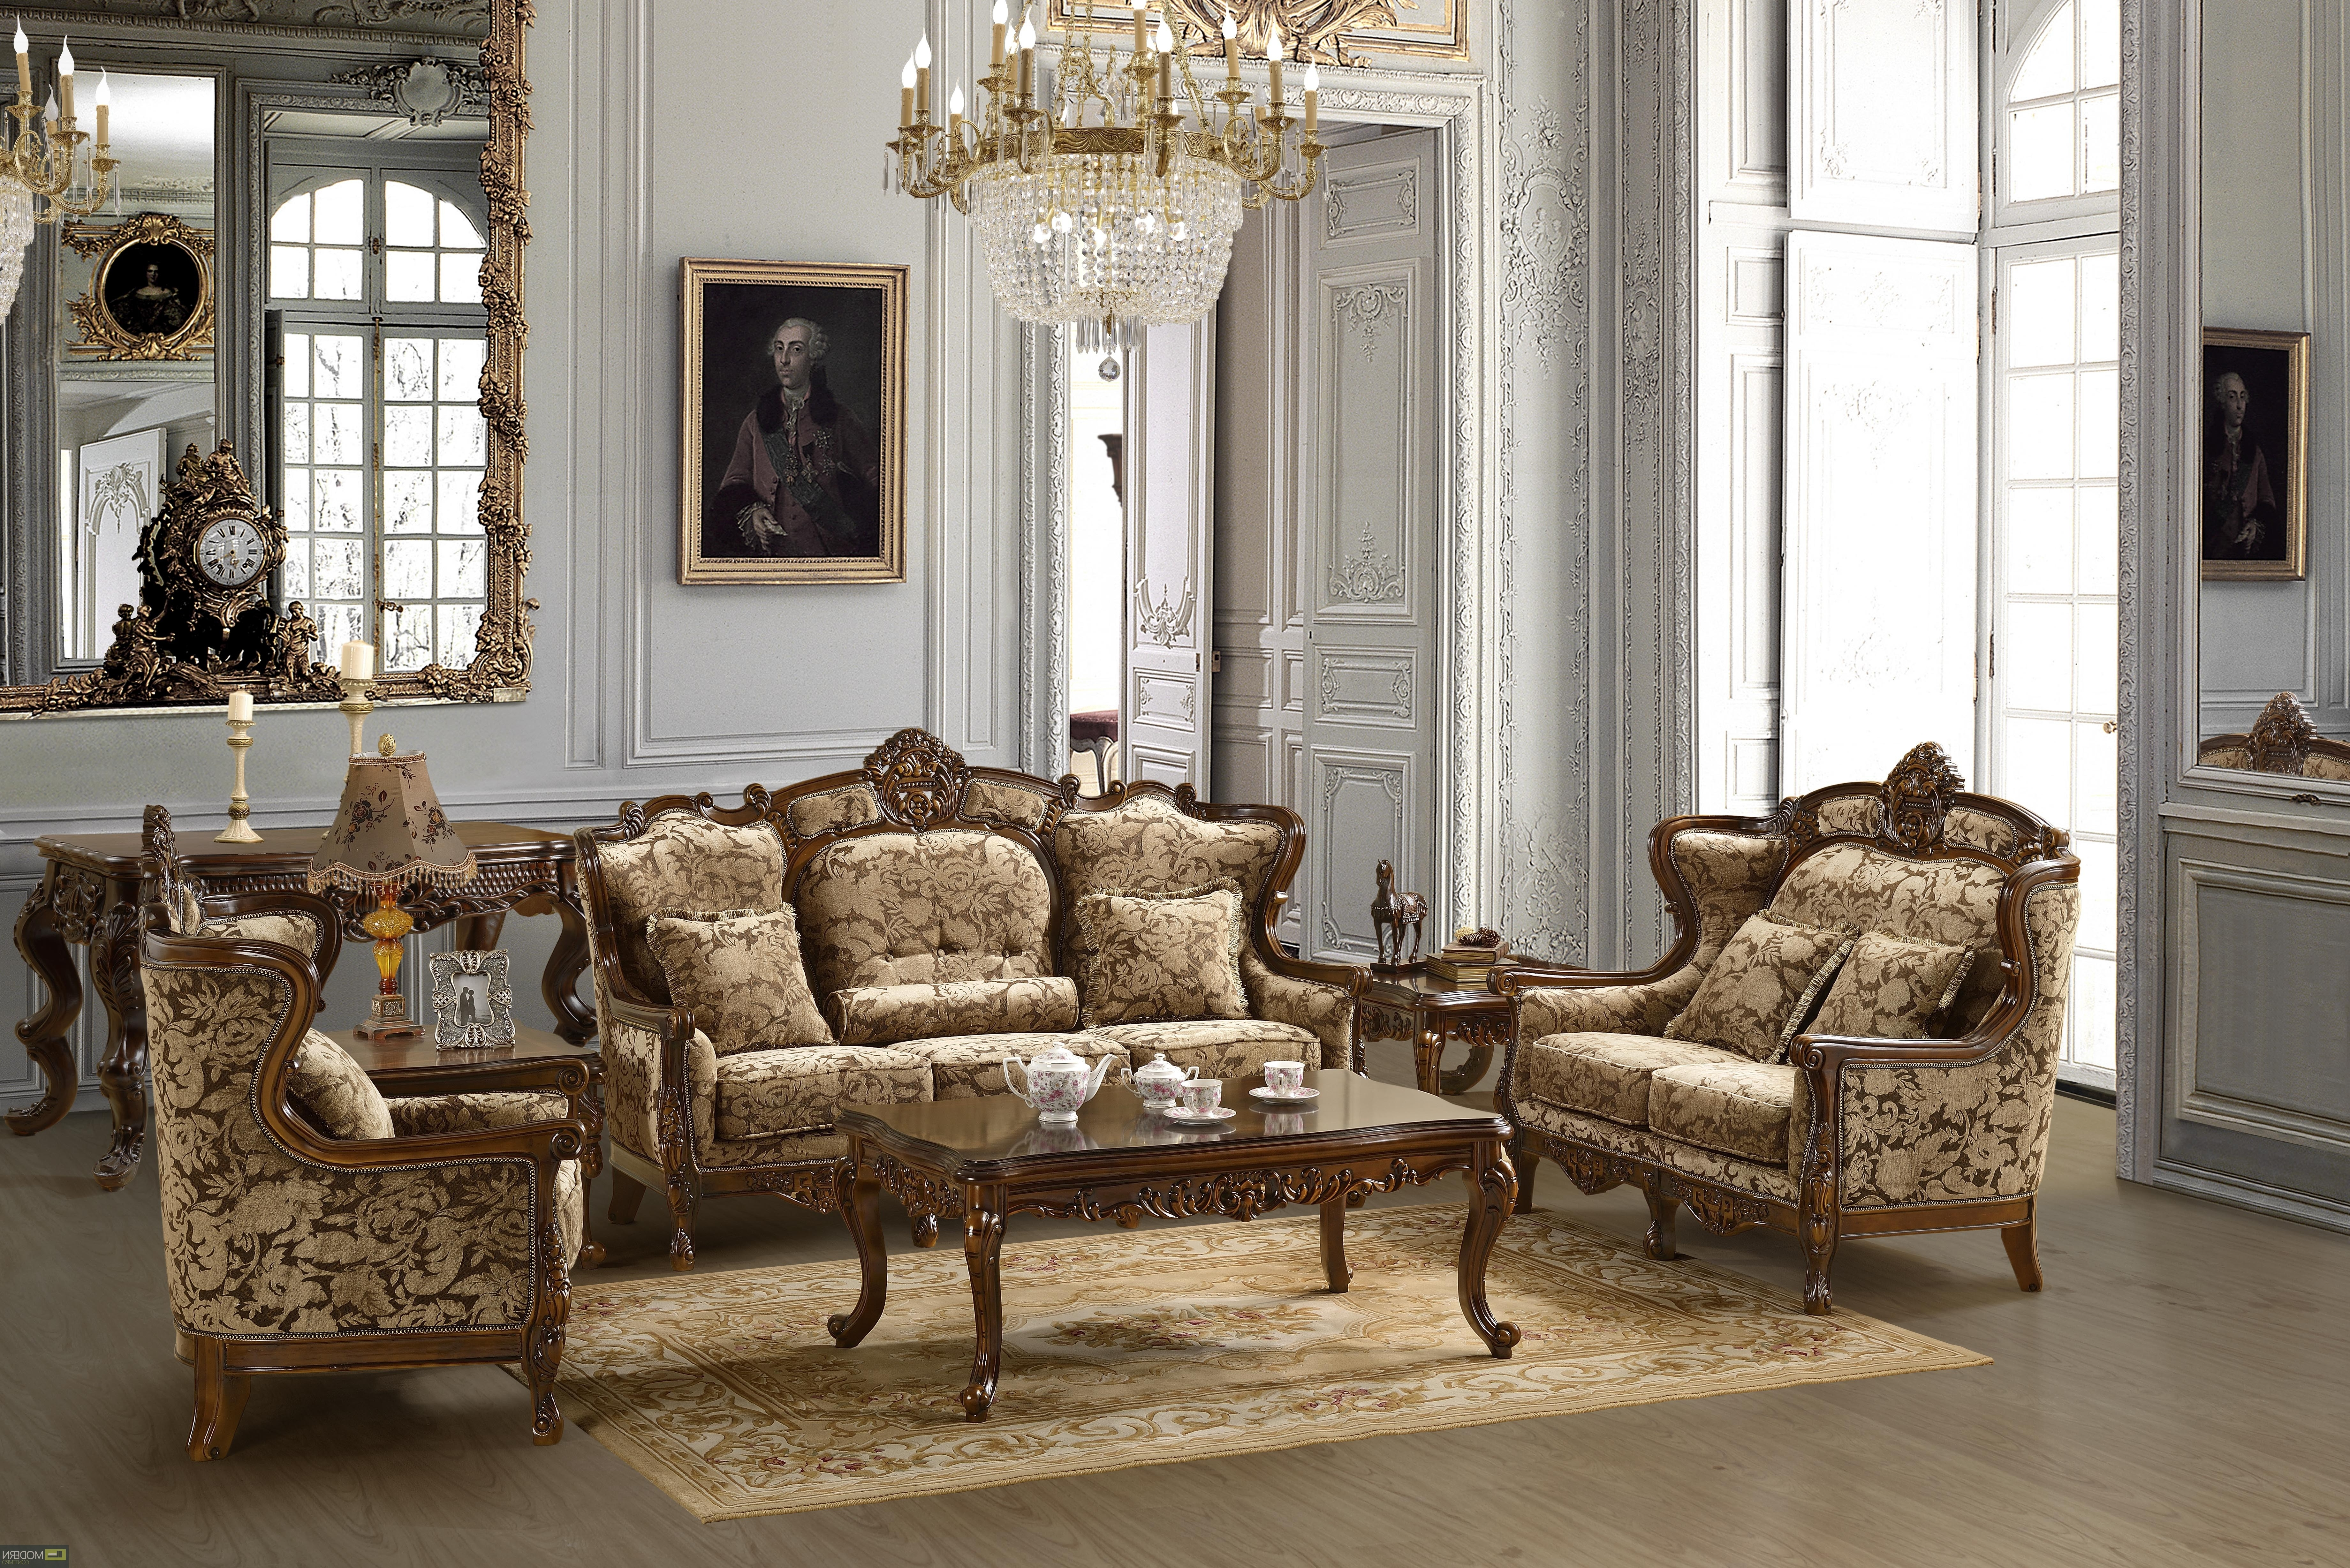 Widely Used Sofa Set Formal Living Room Furniture Mchd839 With Regard To Traditional Sofas And Chairs (View 8 of 15)